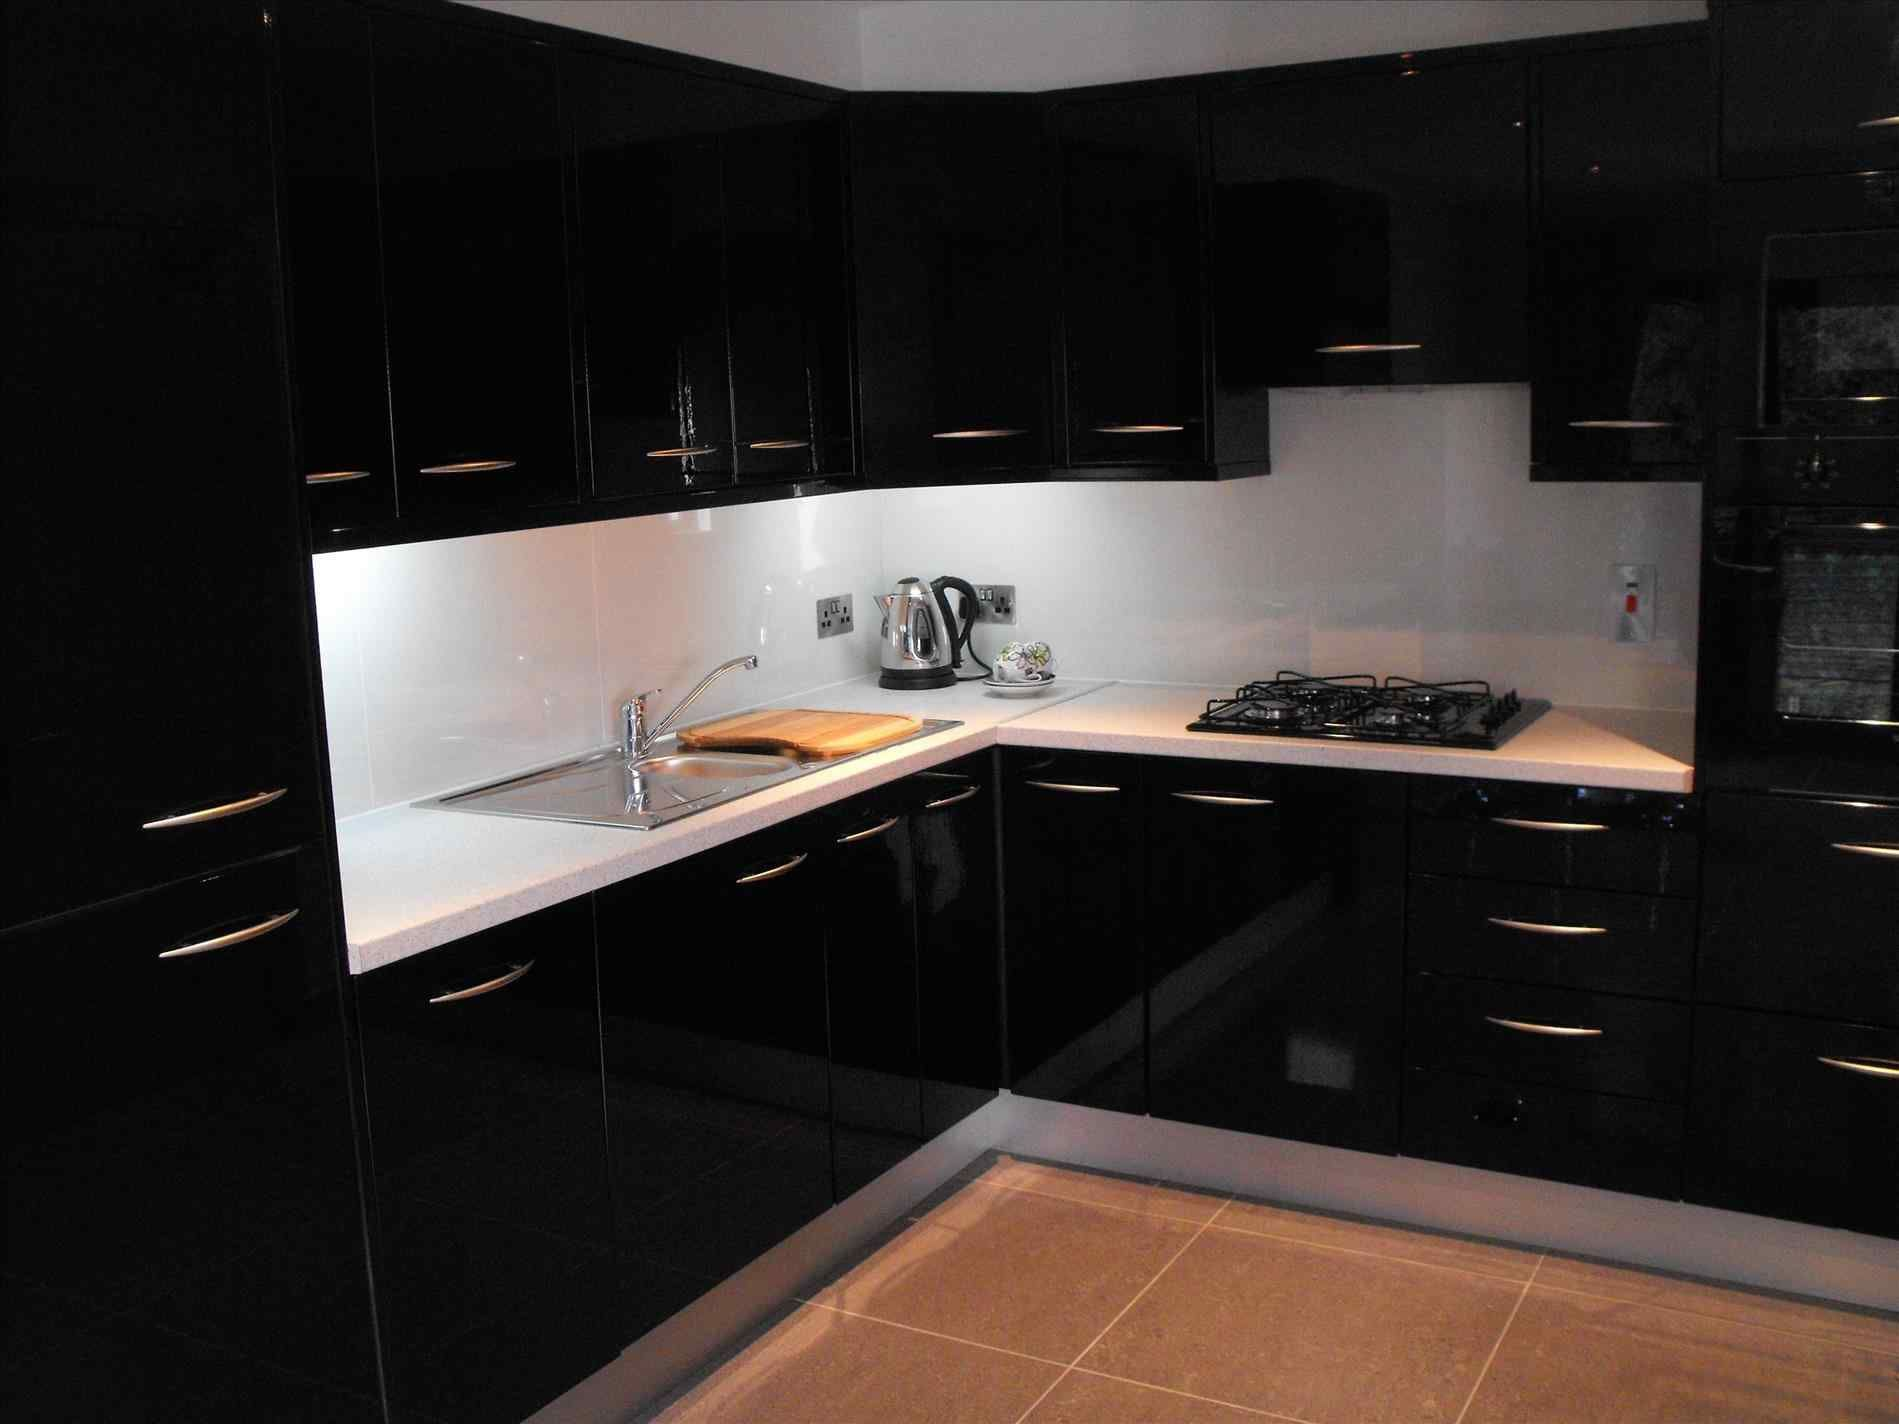 Awesome 13 Black Shiny Kitchen Cabinets Ideas For Stunning Kitchen Breakpr Cocinas De Casa Diseno Cocinas Modernas Cocinas Integrales Modernas Pequenas